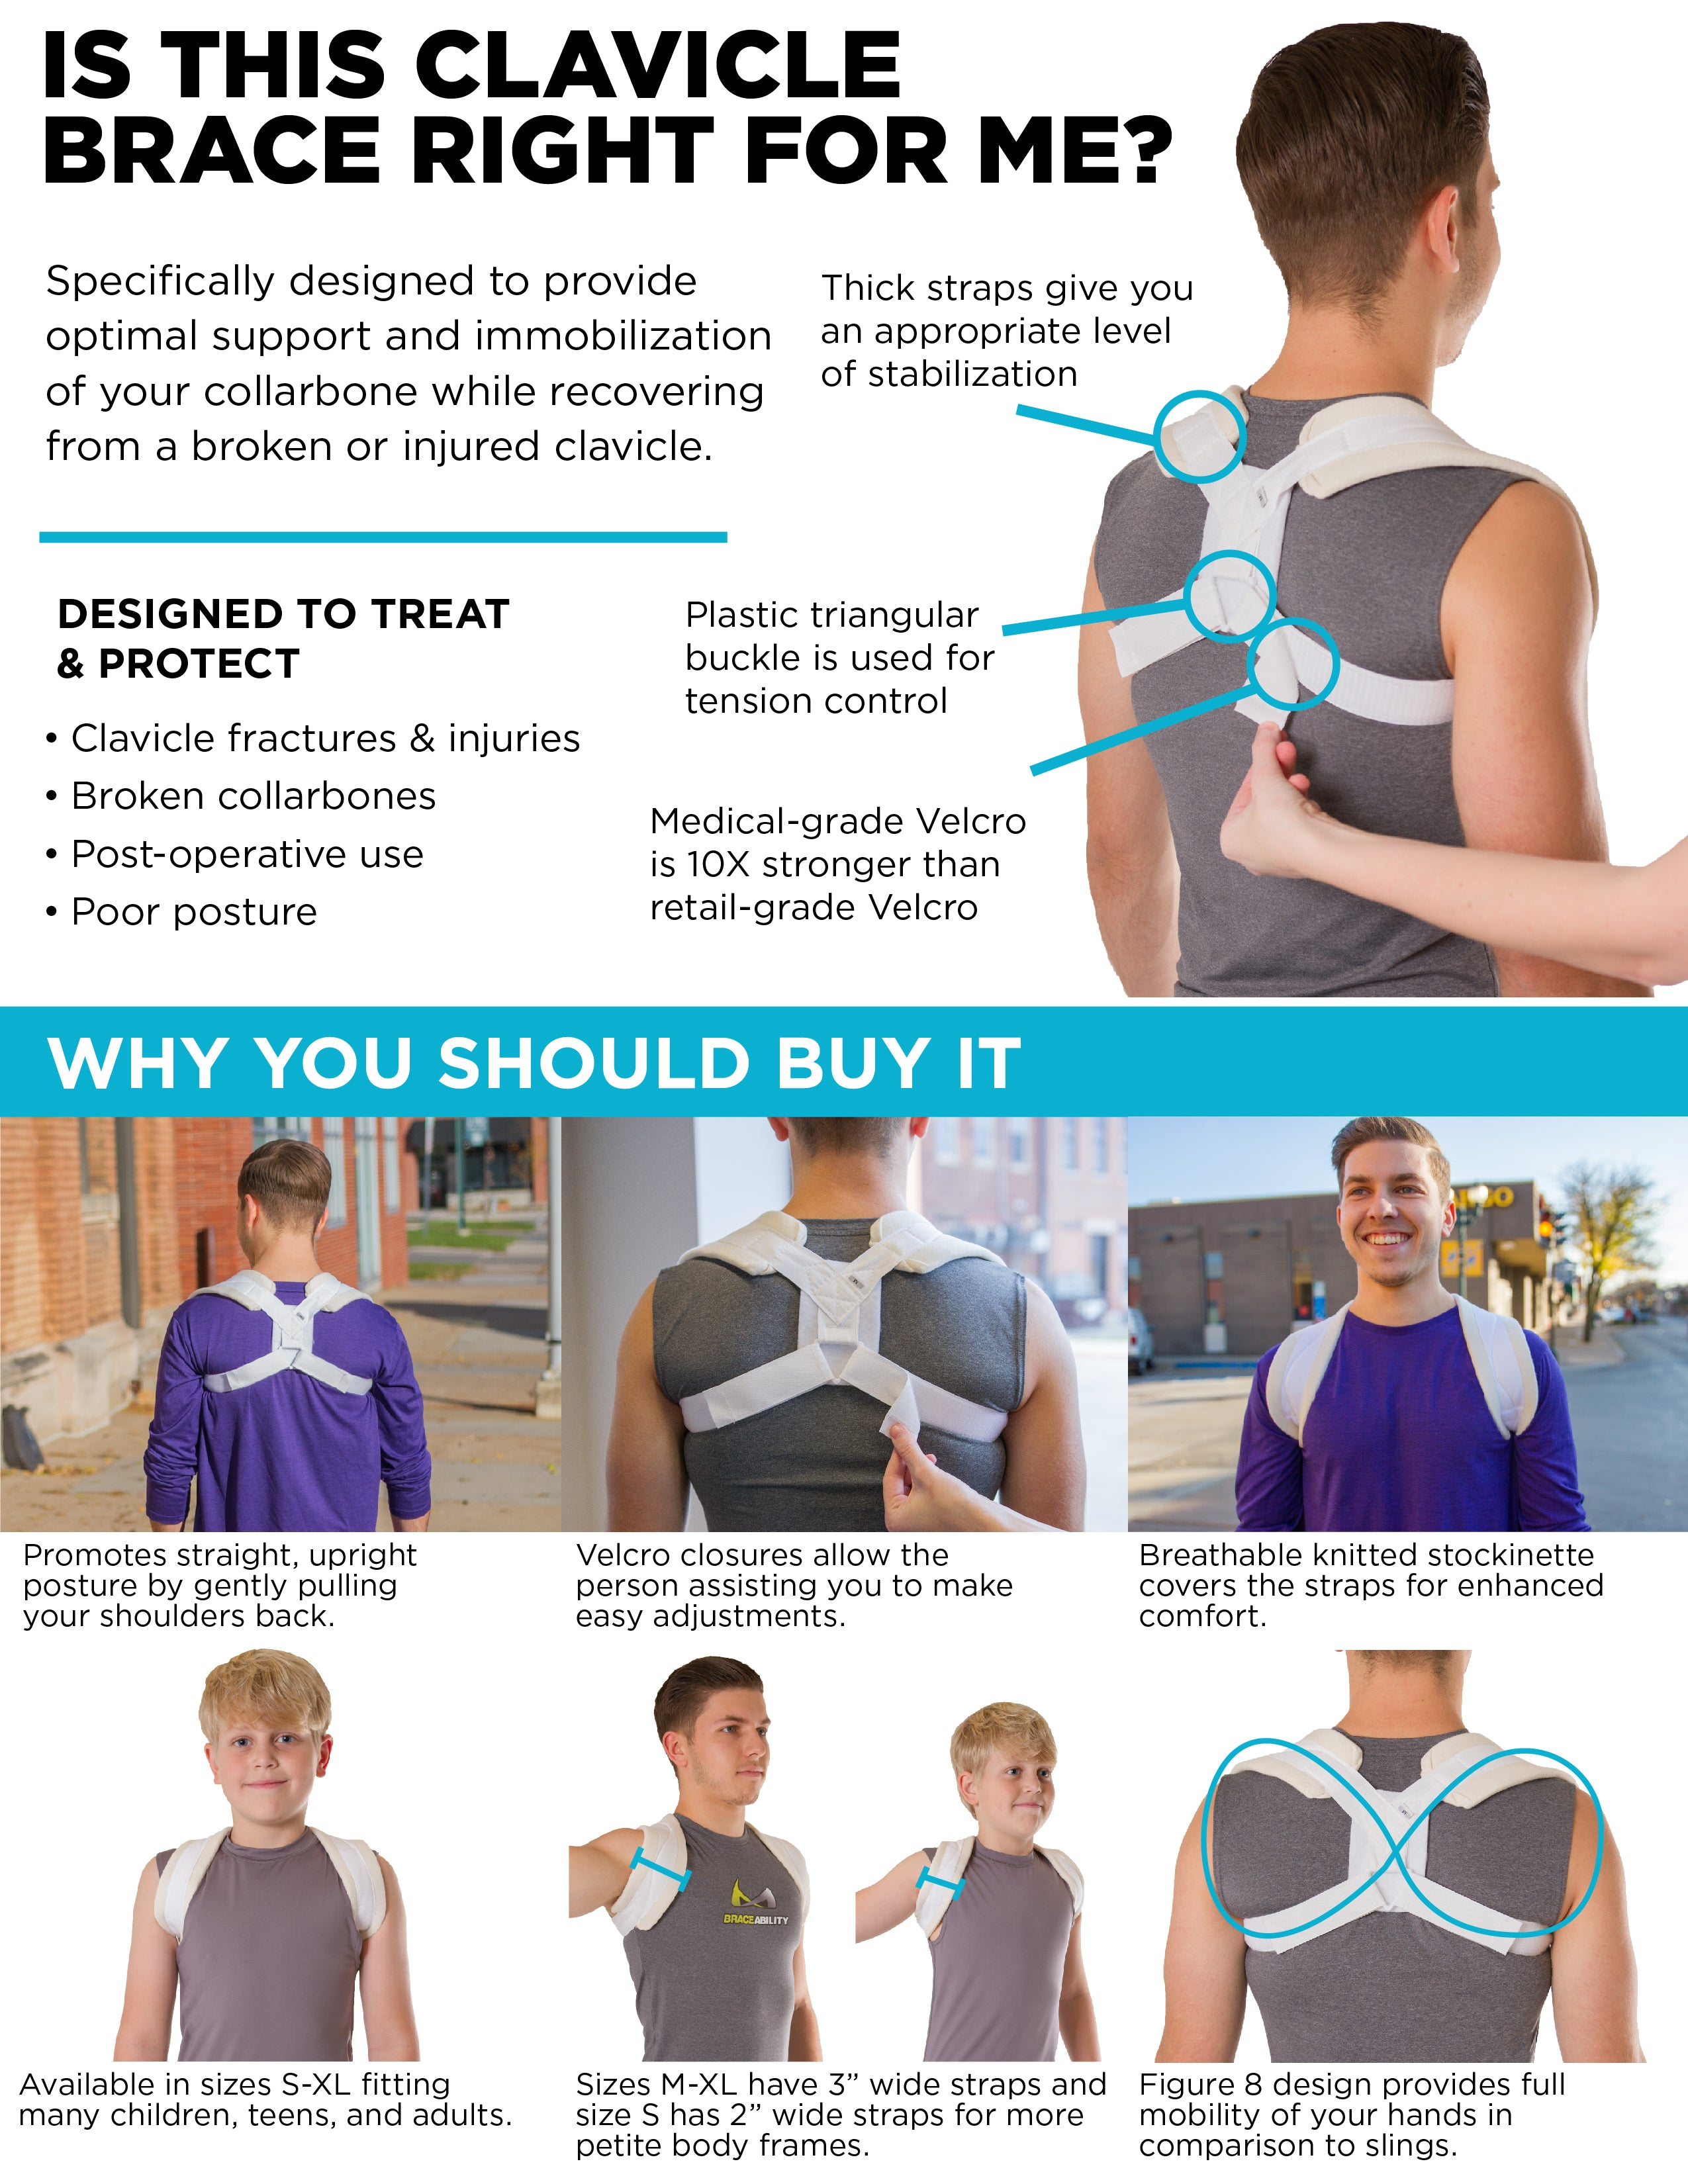 benefits of this broken collarbone brace for clavicle fractures and posture support